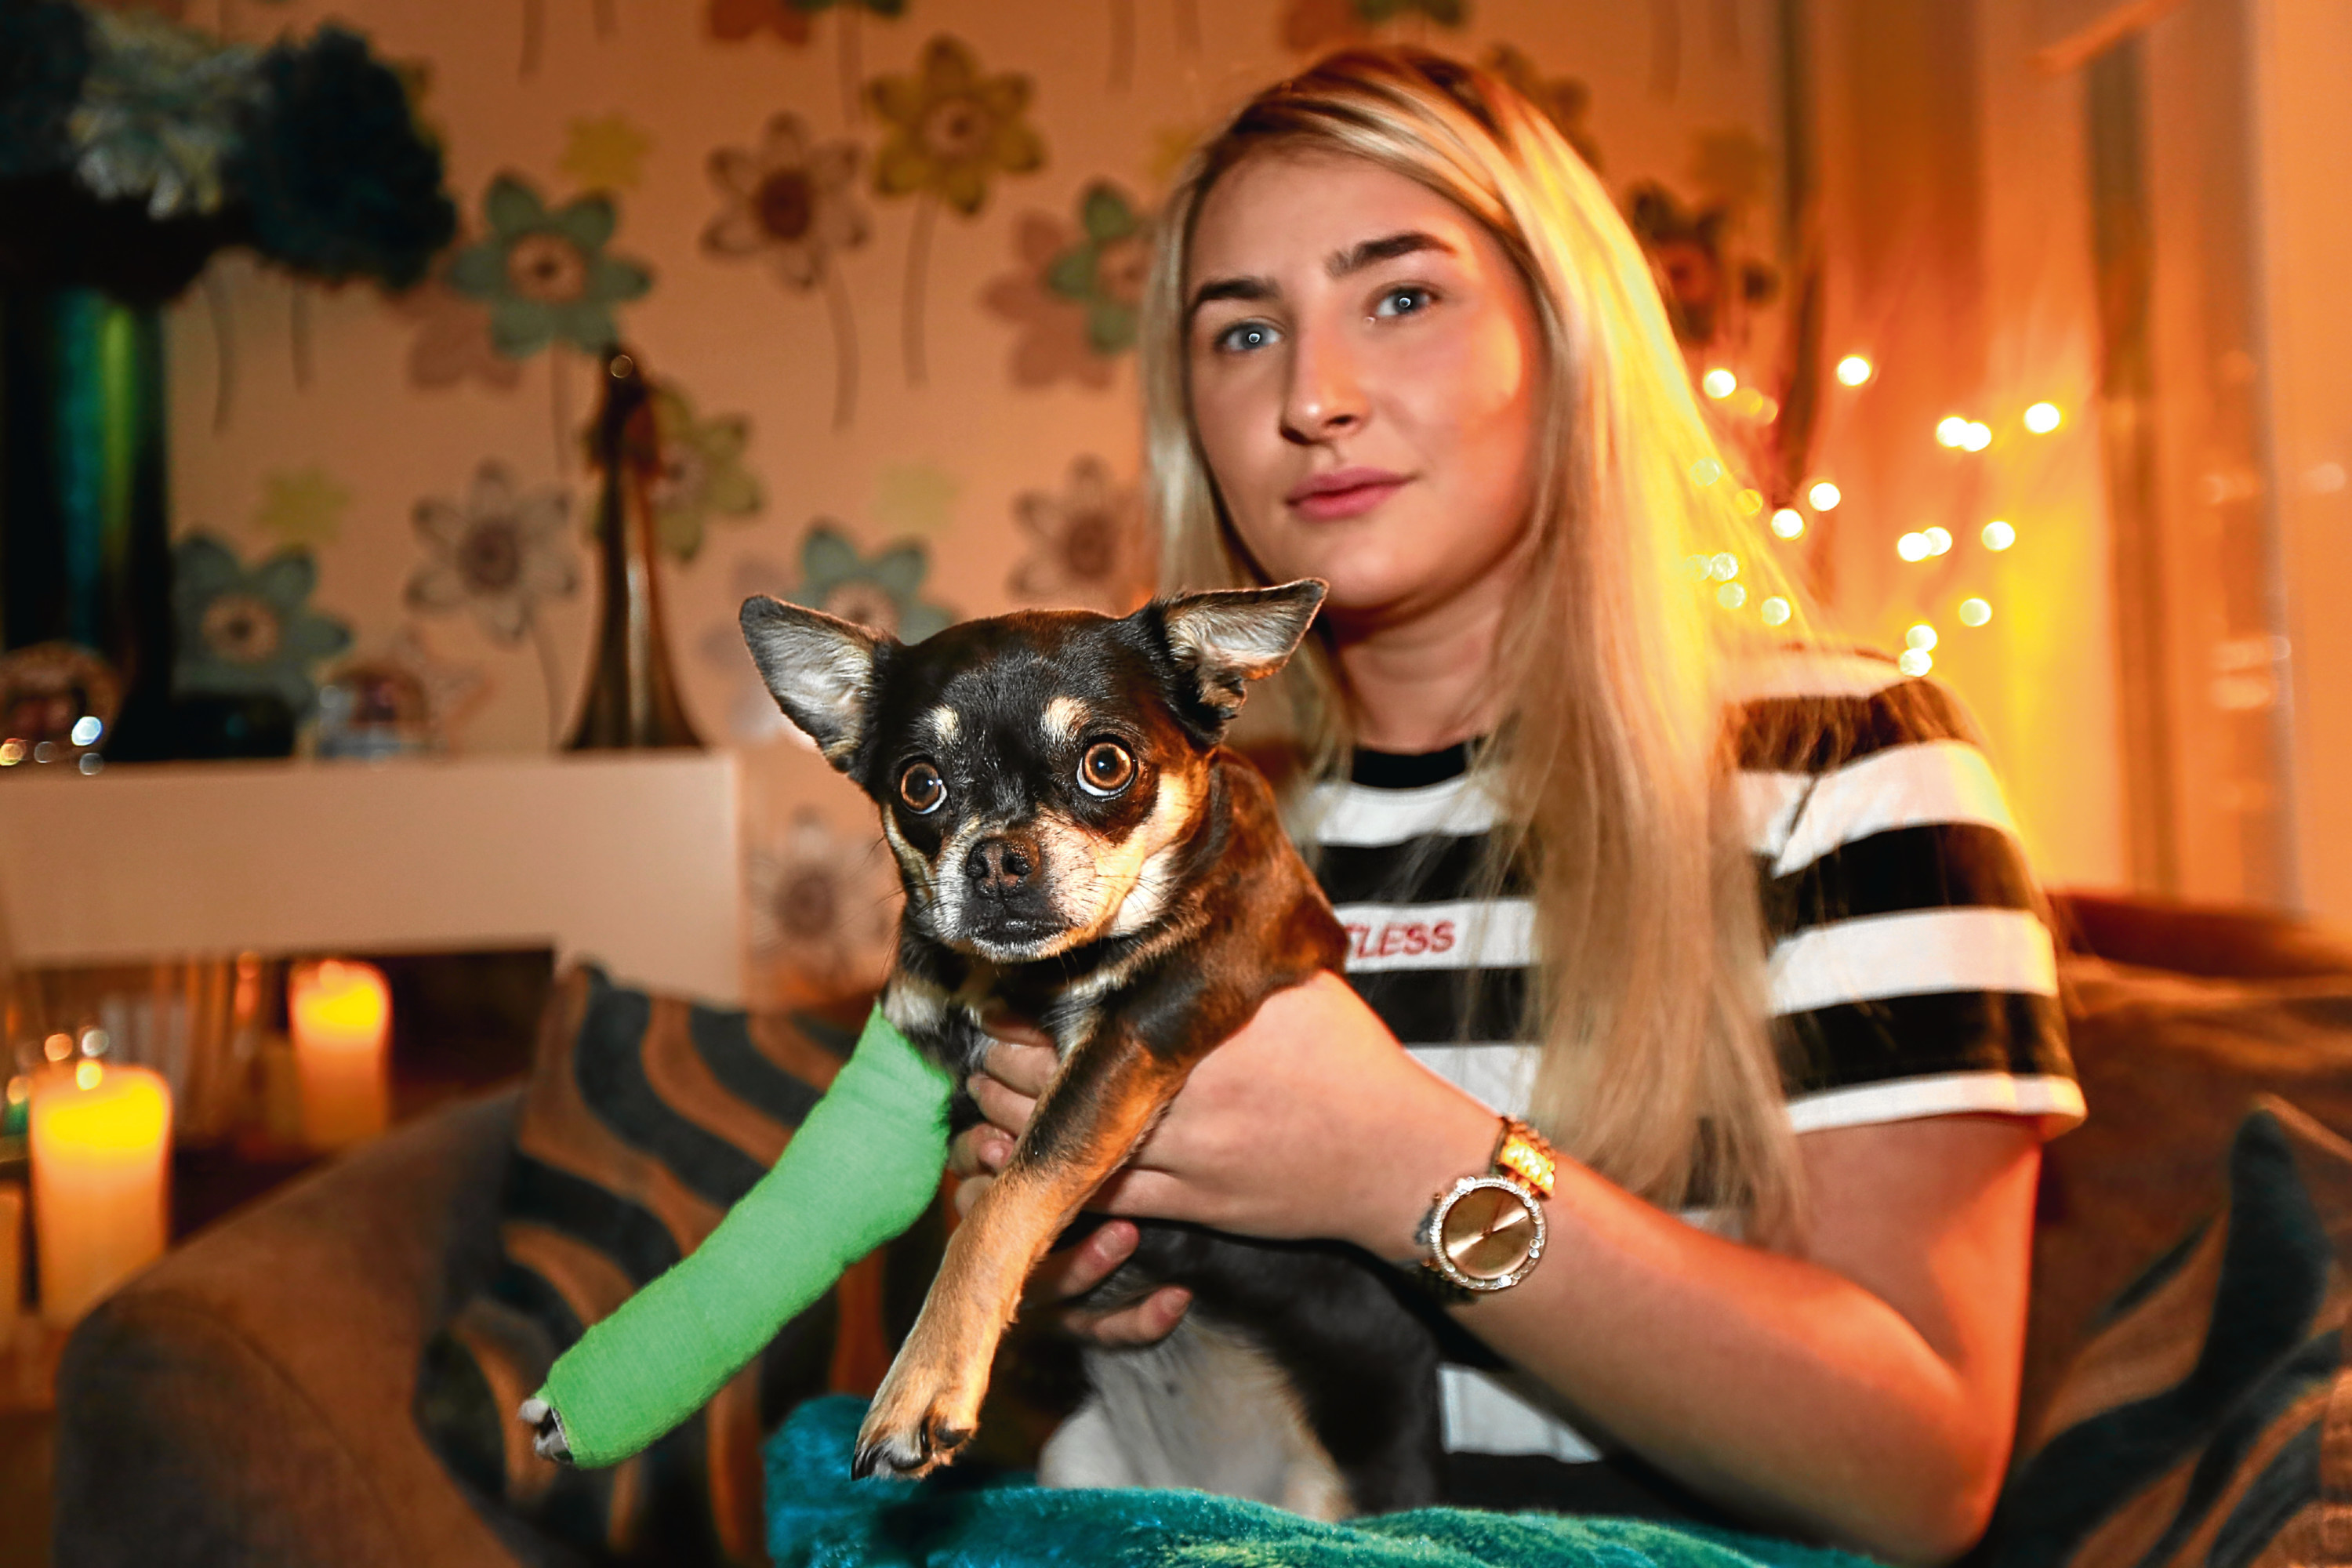 Cally Wright's dog, Lulu was hit by a man driving a silver Mercedes who drove off